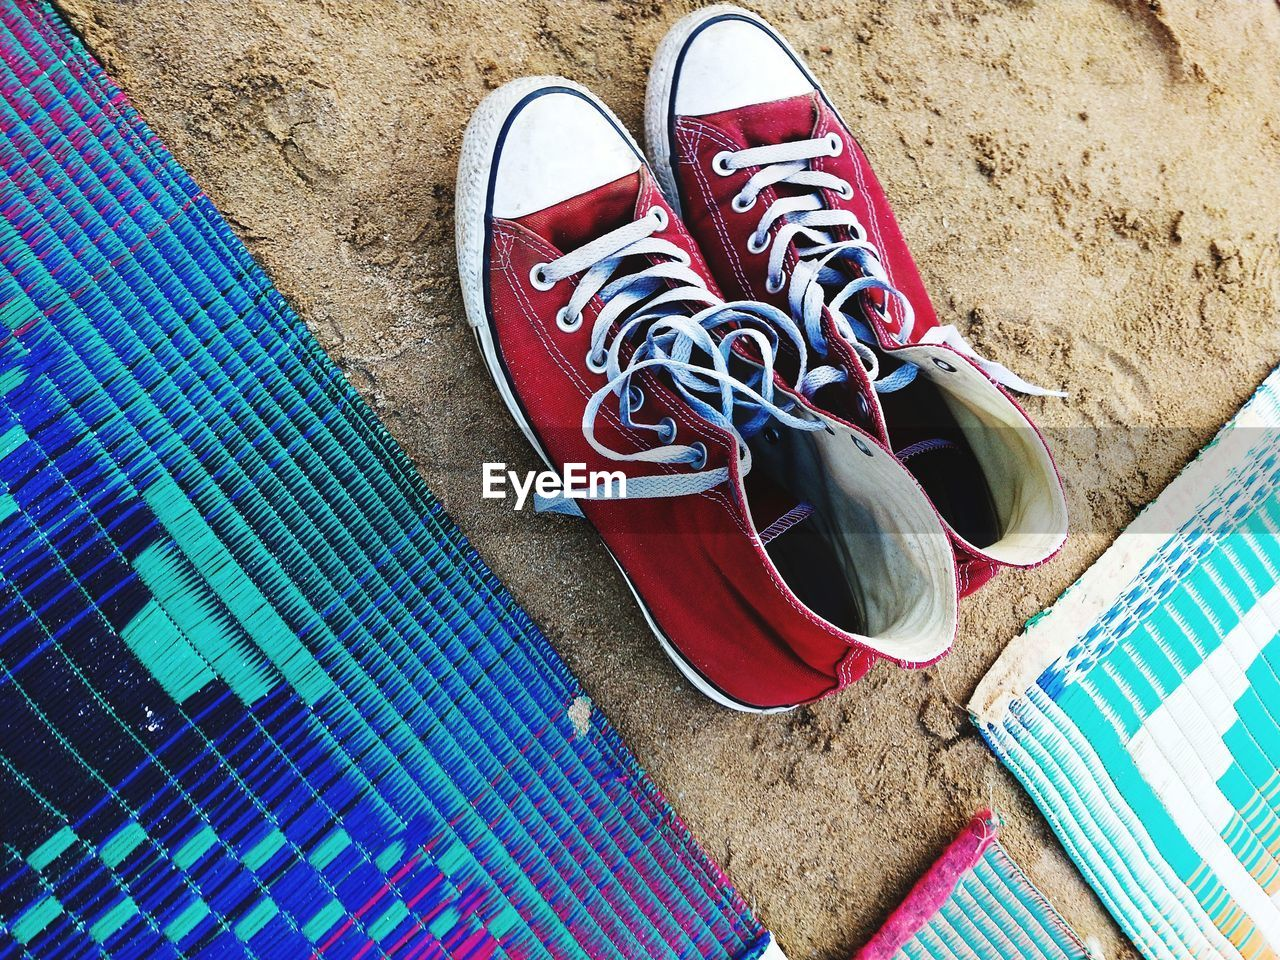 HIGH ANGLE VIEW OF SHOES ON THE SAND